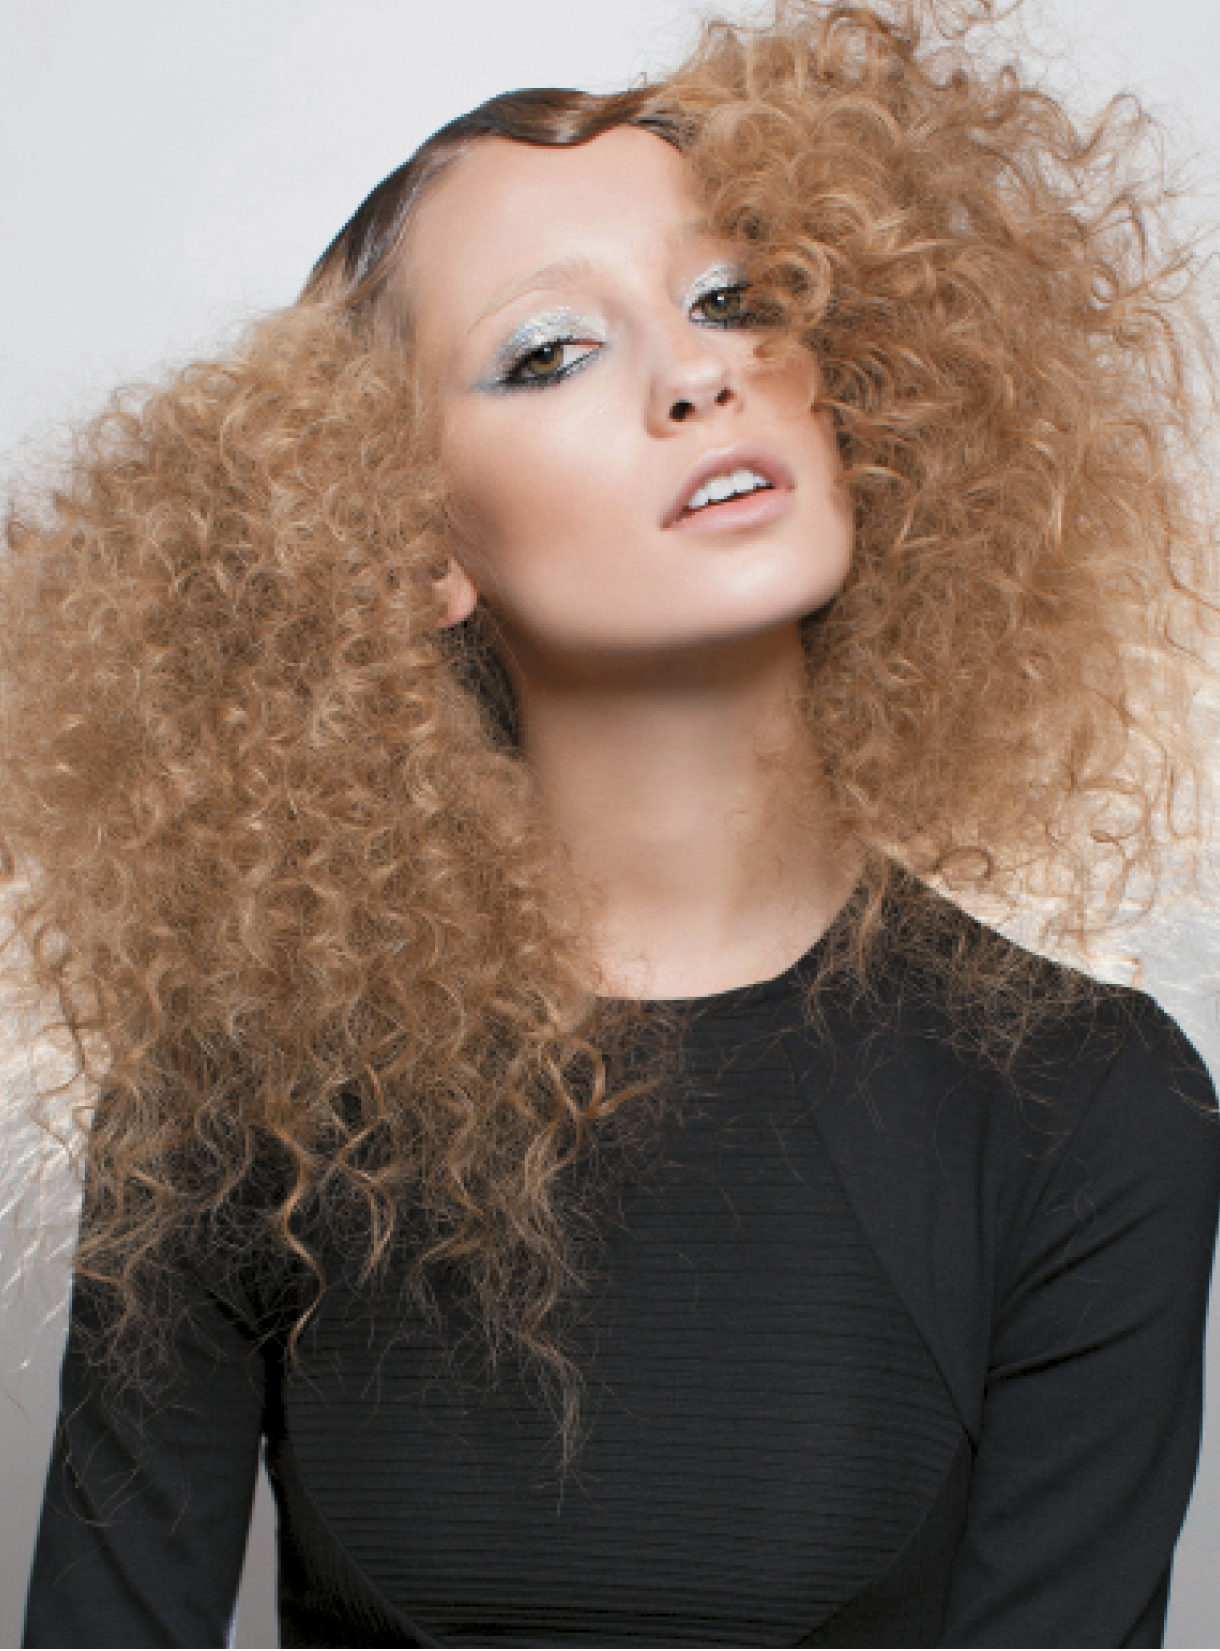 For this blonde, curly style, Buccio created finger waves at the area closest to the scalp, relying on Osis Gelflex for a sleek, wet effect. He separated every wave and curl, and brushed out some areas. To create luscious volume and texture, Buccio maintained a straight line at the top of the head and used Osis Elastic hairspray for moveable hold.